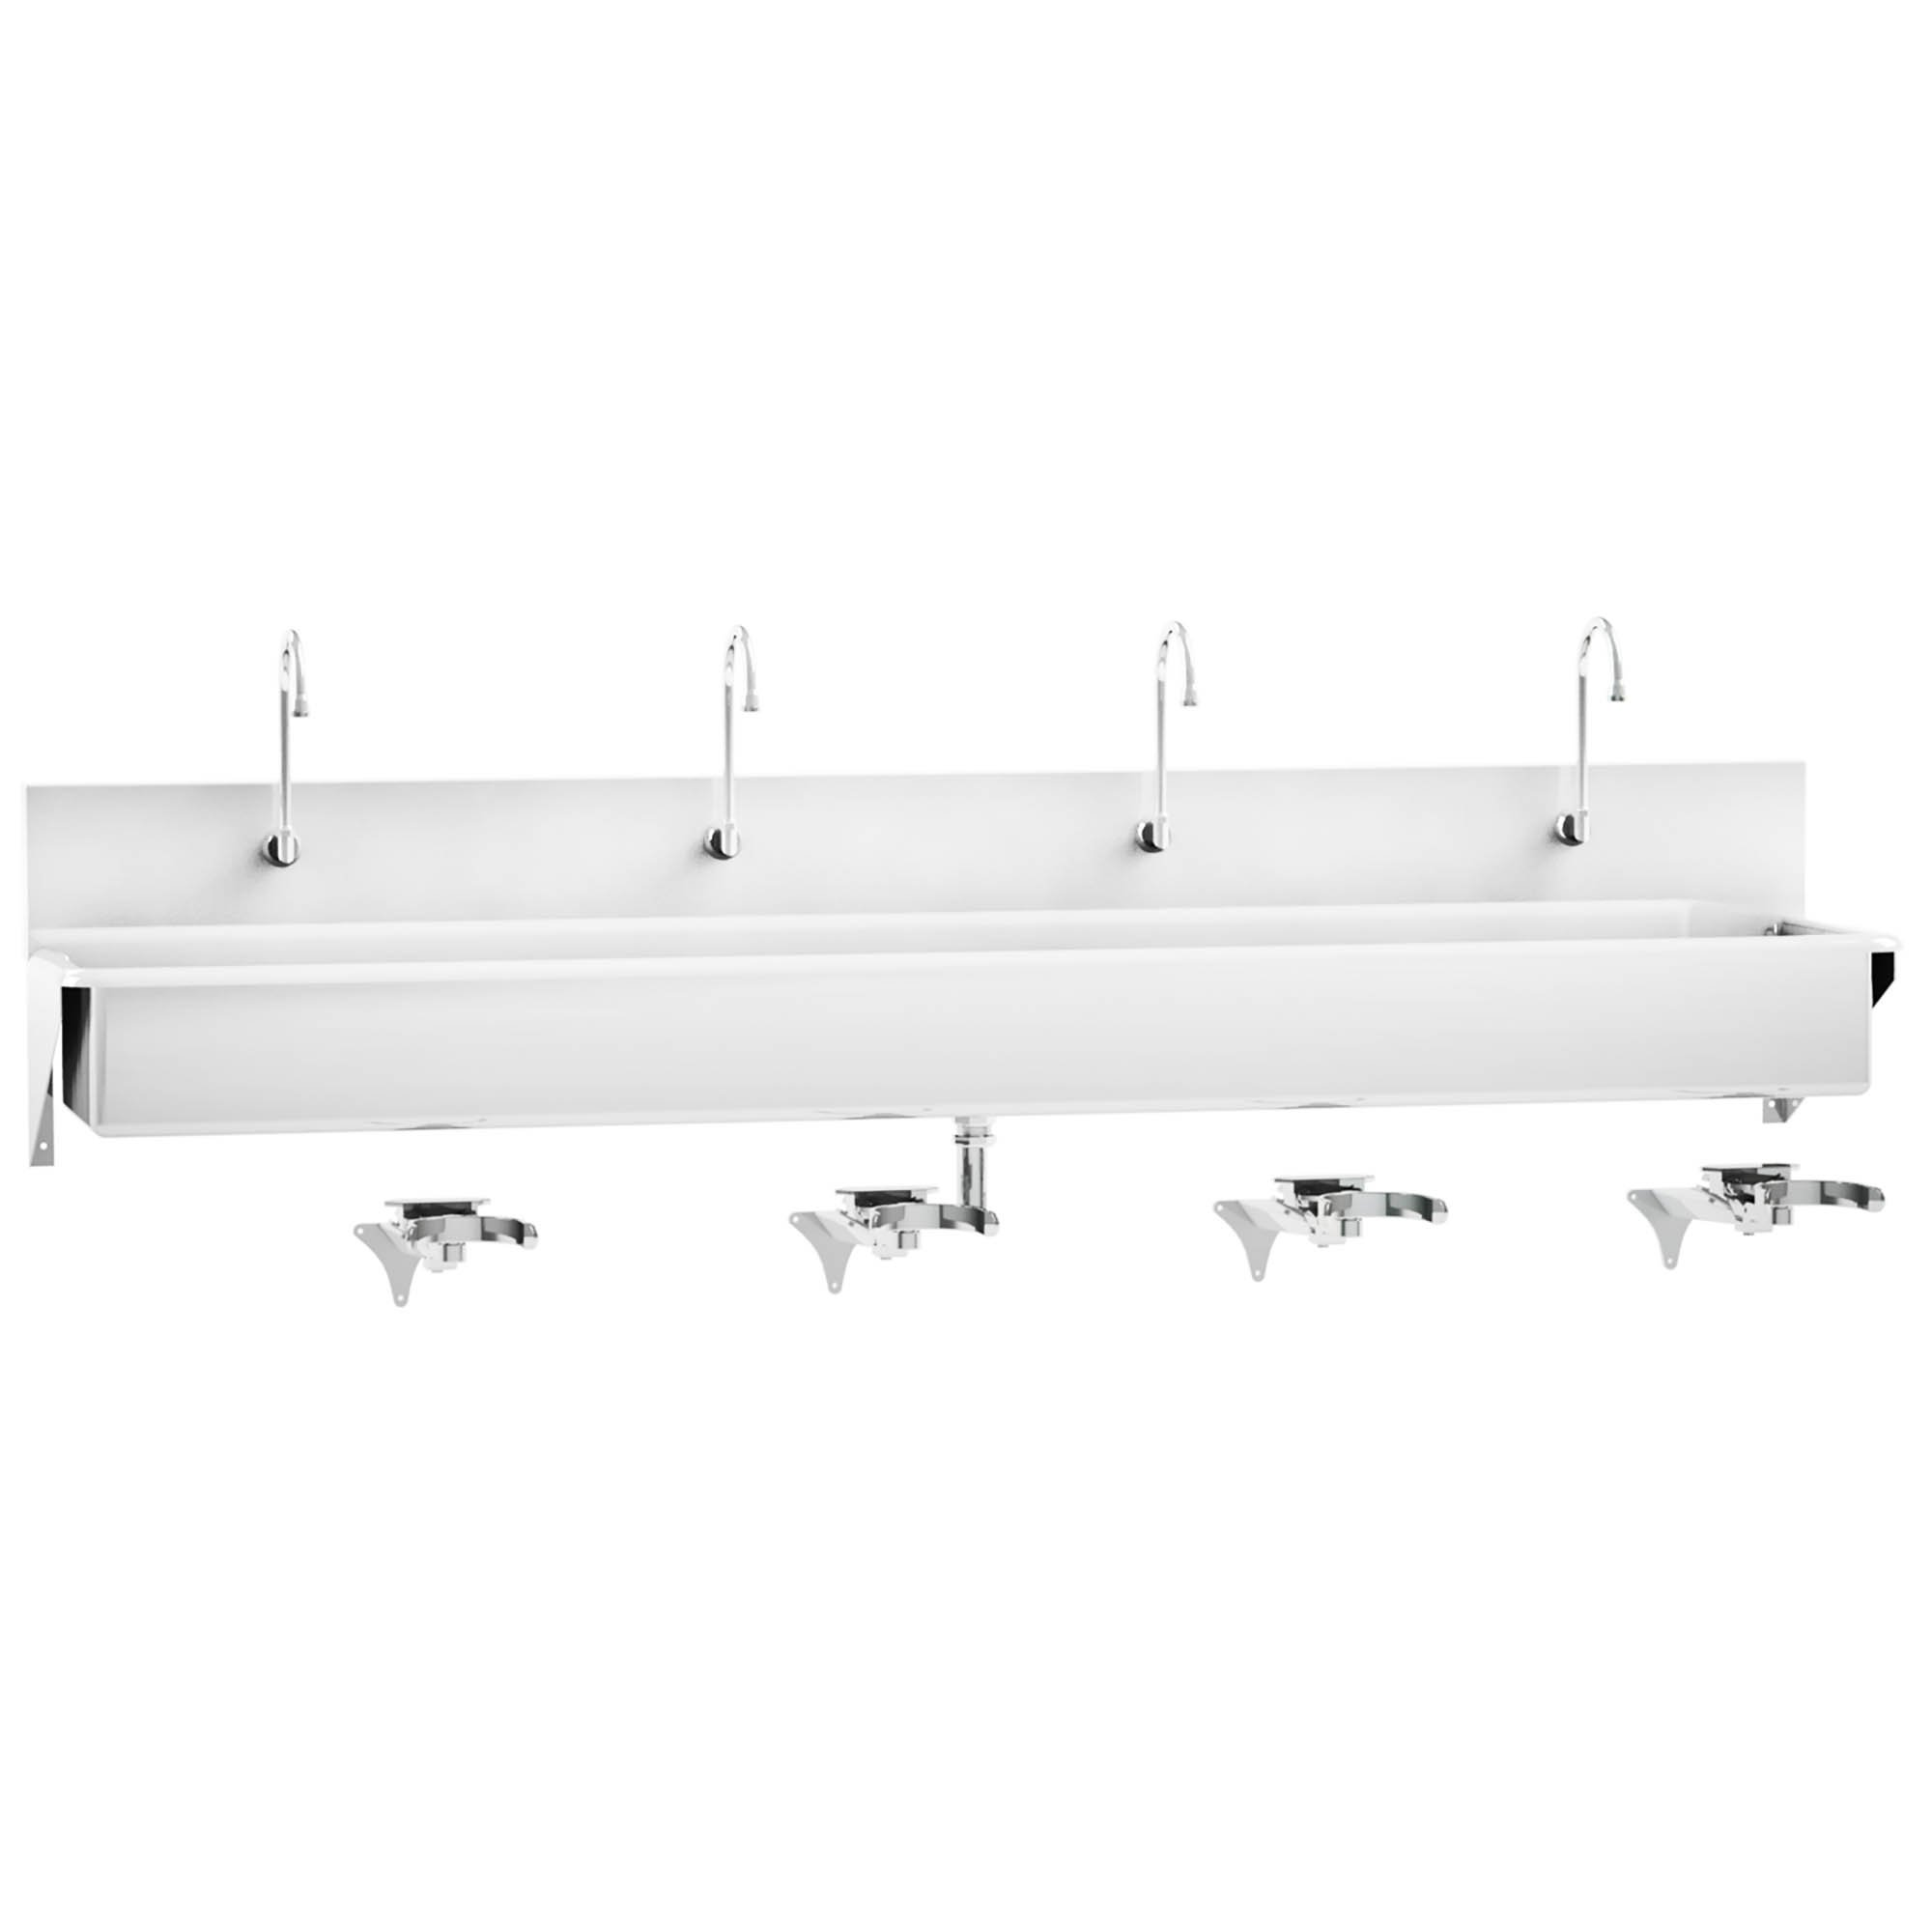 Windsor Scrub Sink - Four-Place Knee-Action Control - 91